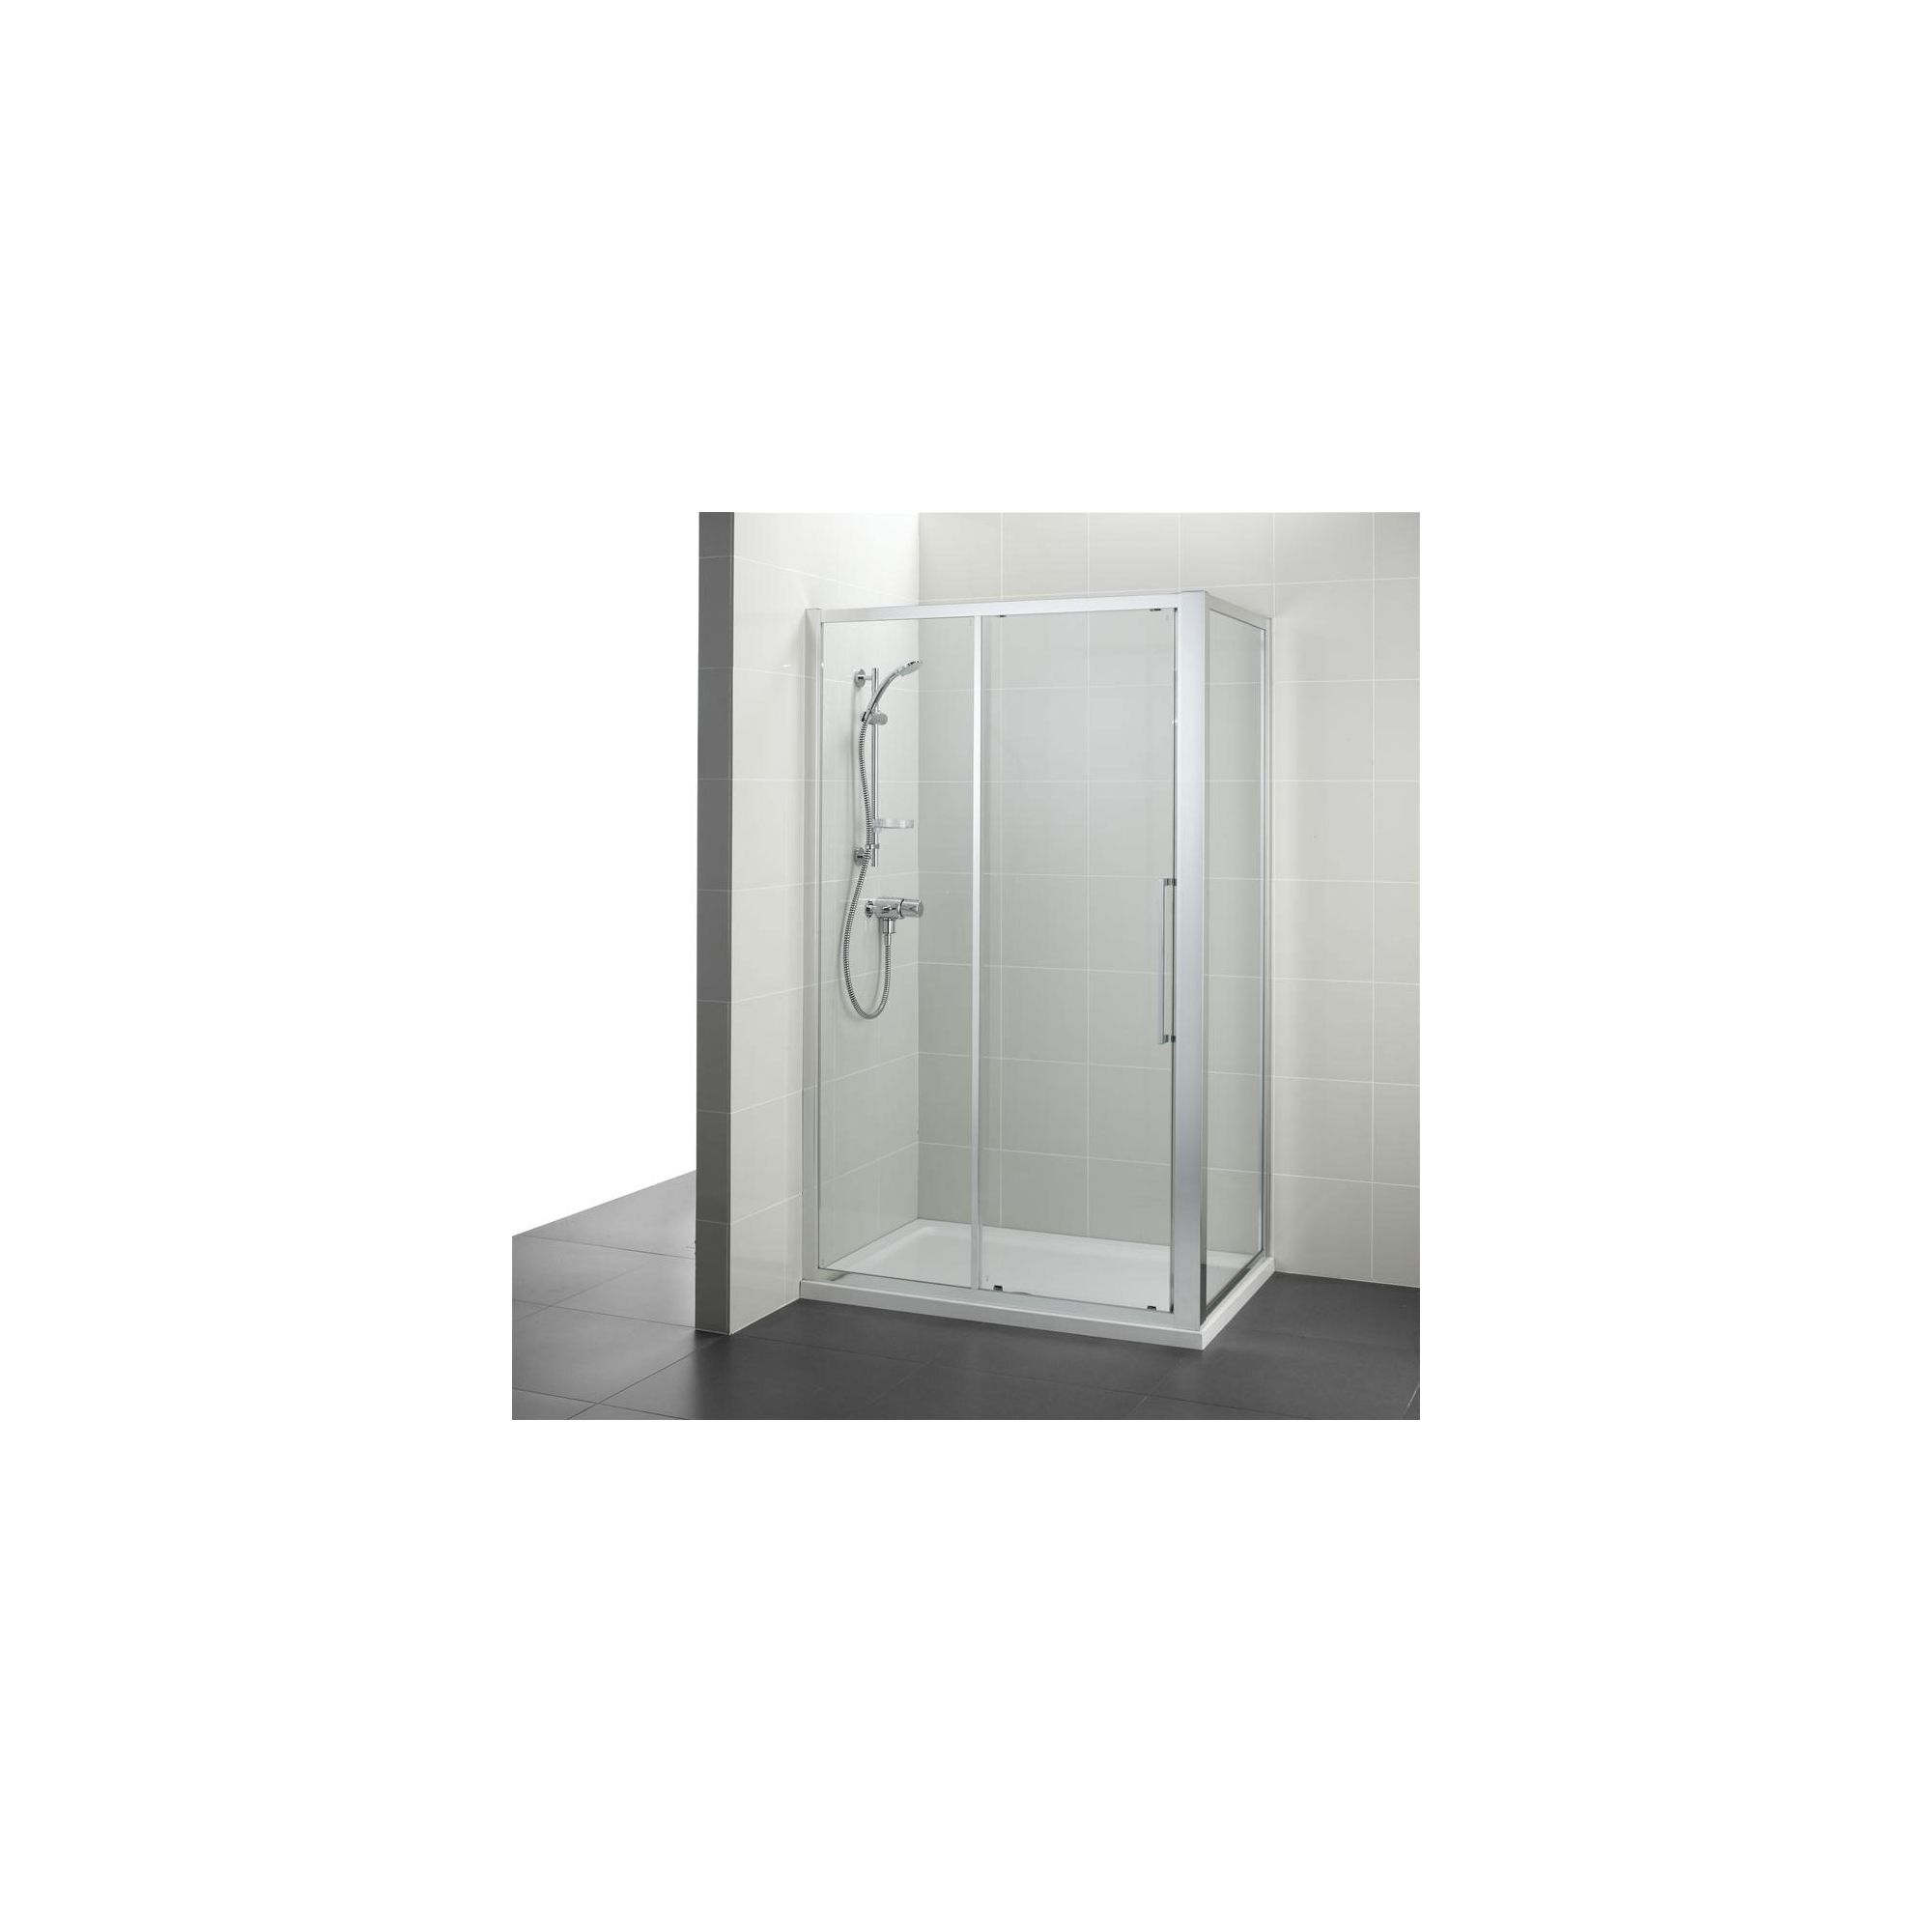 Ideal Standard Kubo Bi-Fold Door Shower Enclosure, 800mm x 800mm, Bright Silver Frame, Low Profile Tray at Tescos Direct